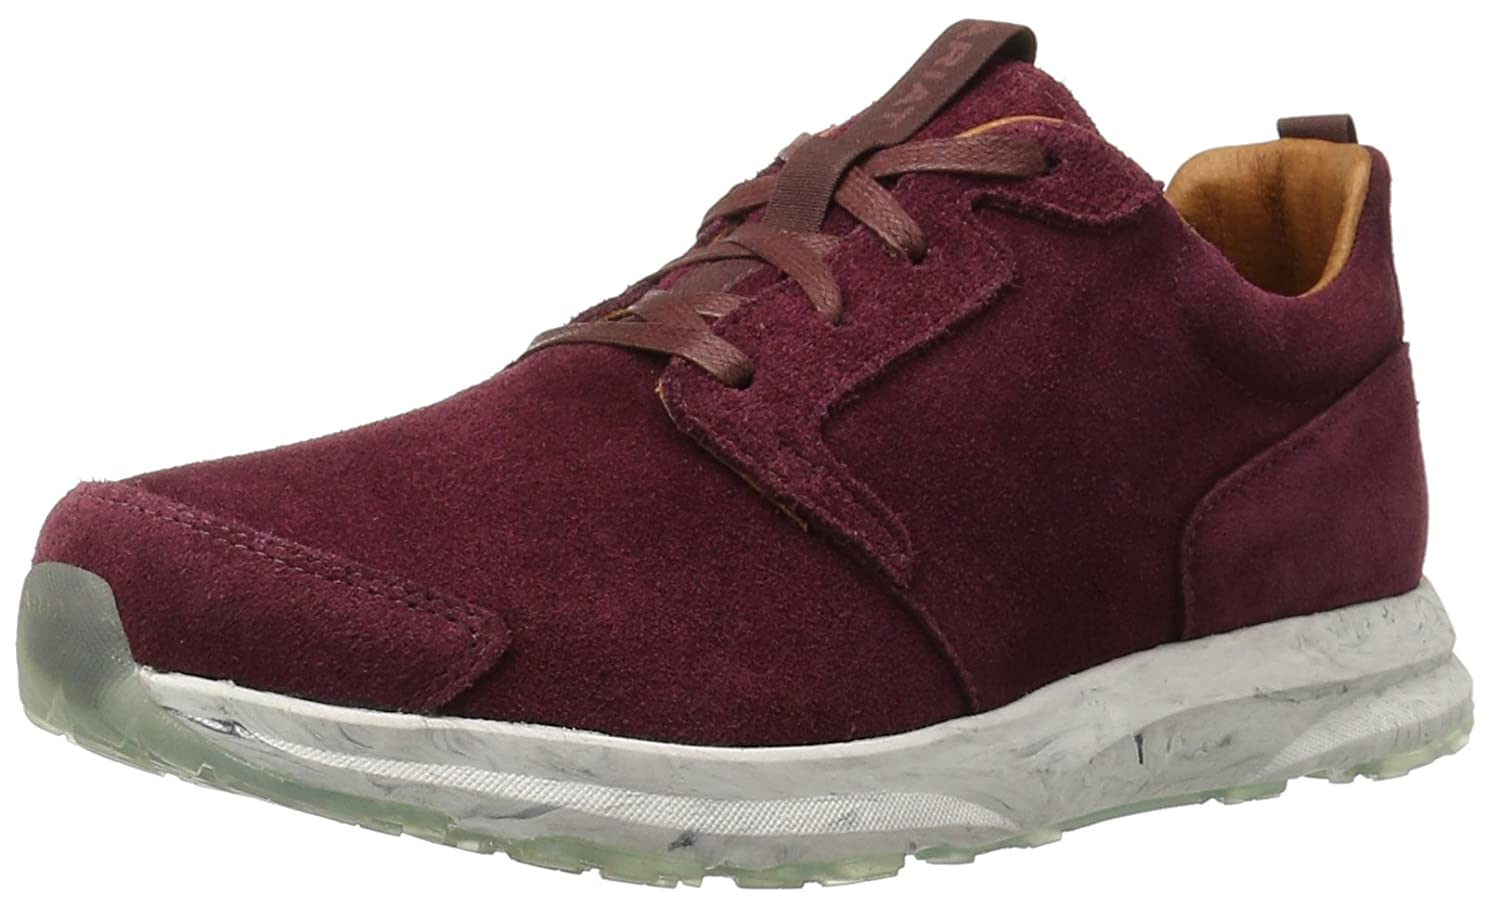 Ariat Women's Fusion Athletic Shoe B01C3ALXHS 11 B(M) US|Ox Blood